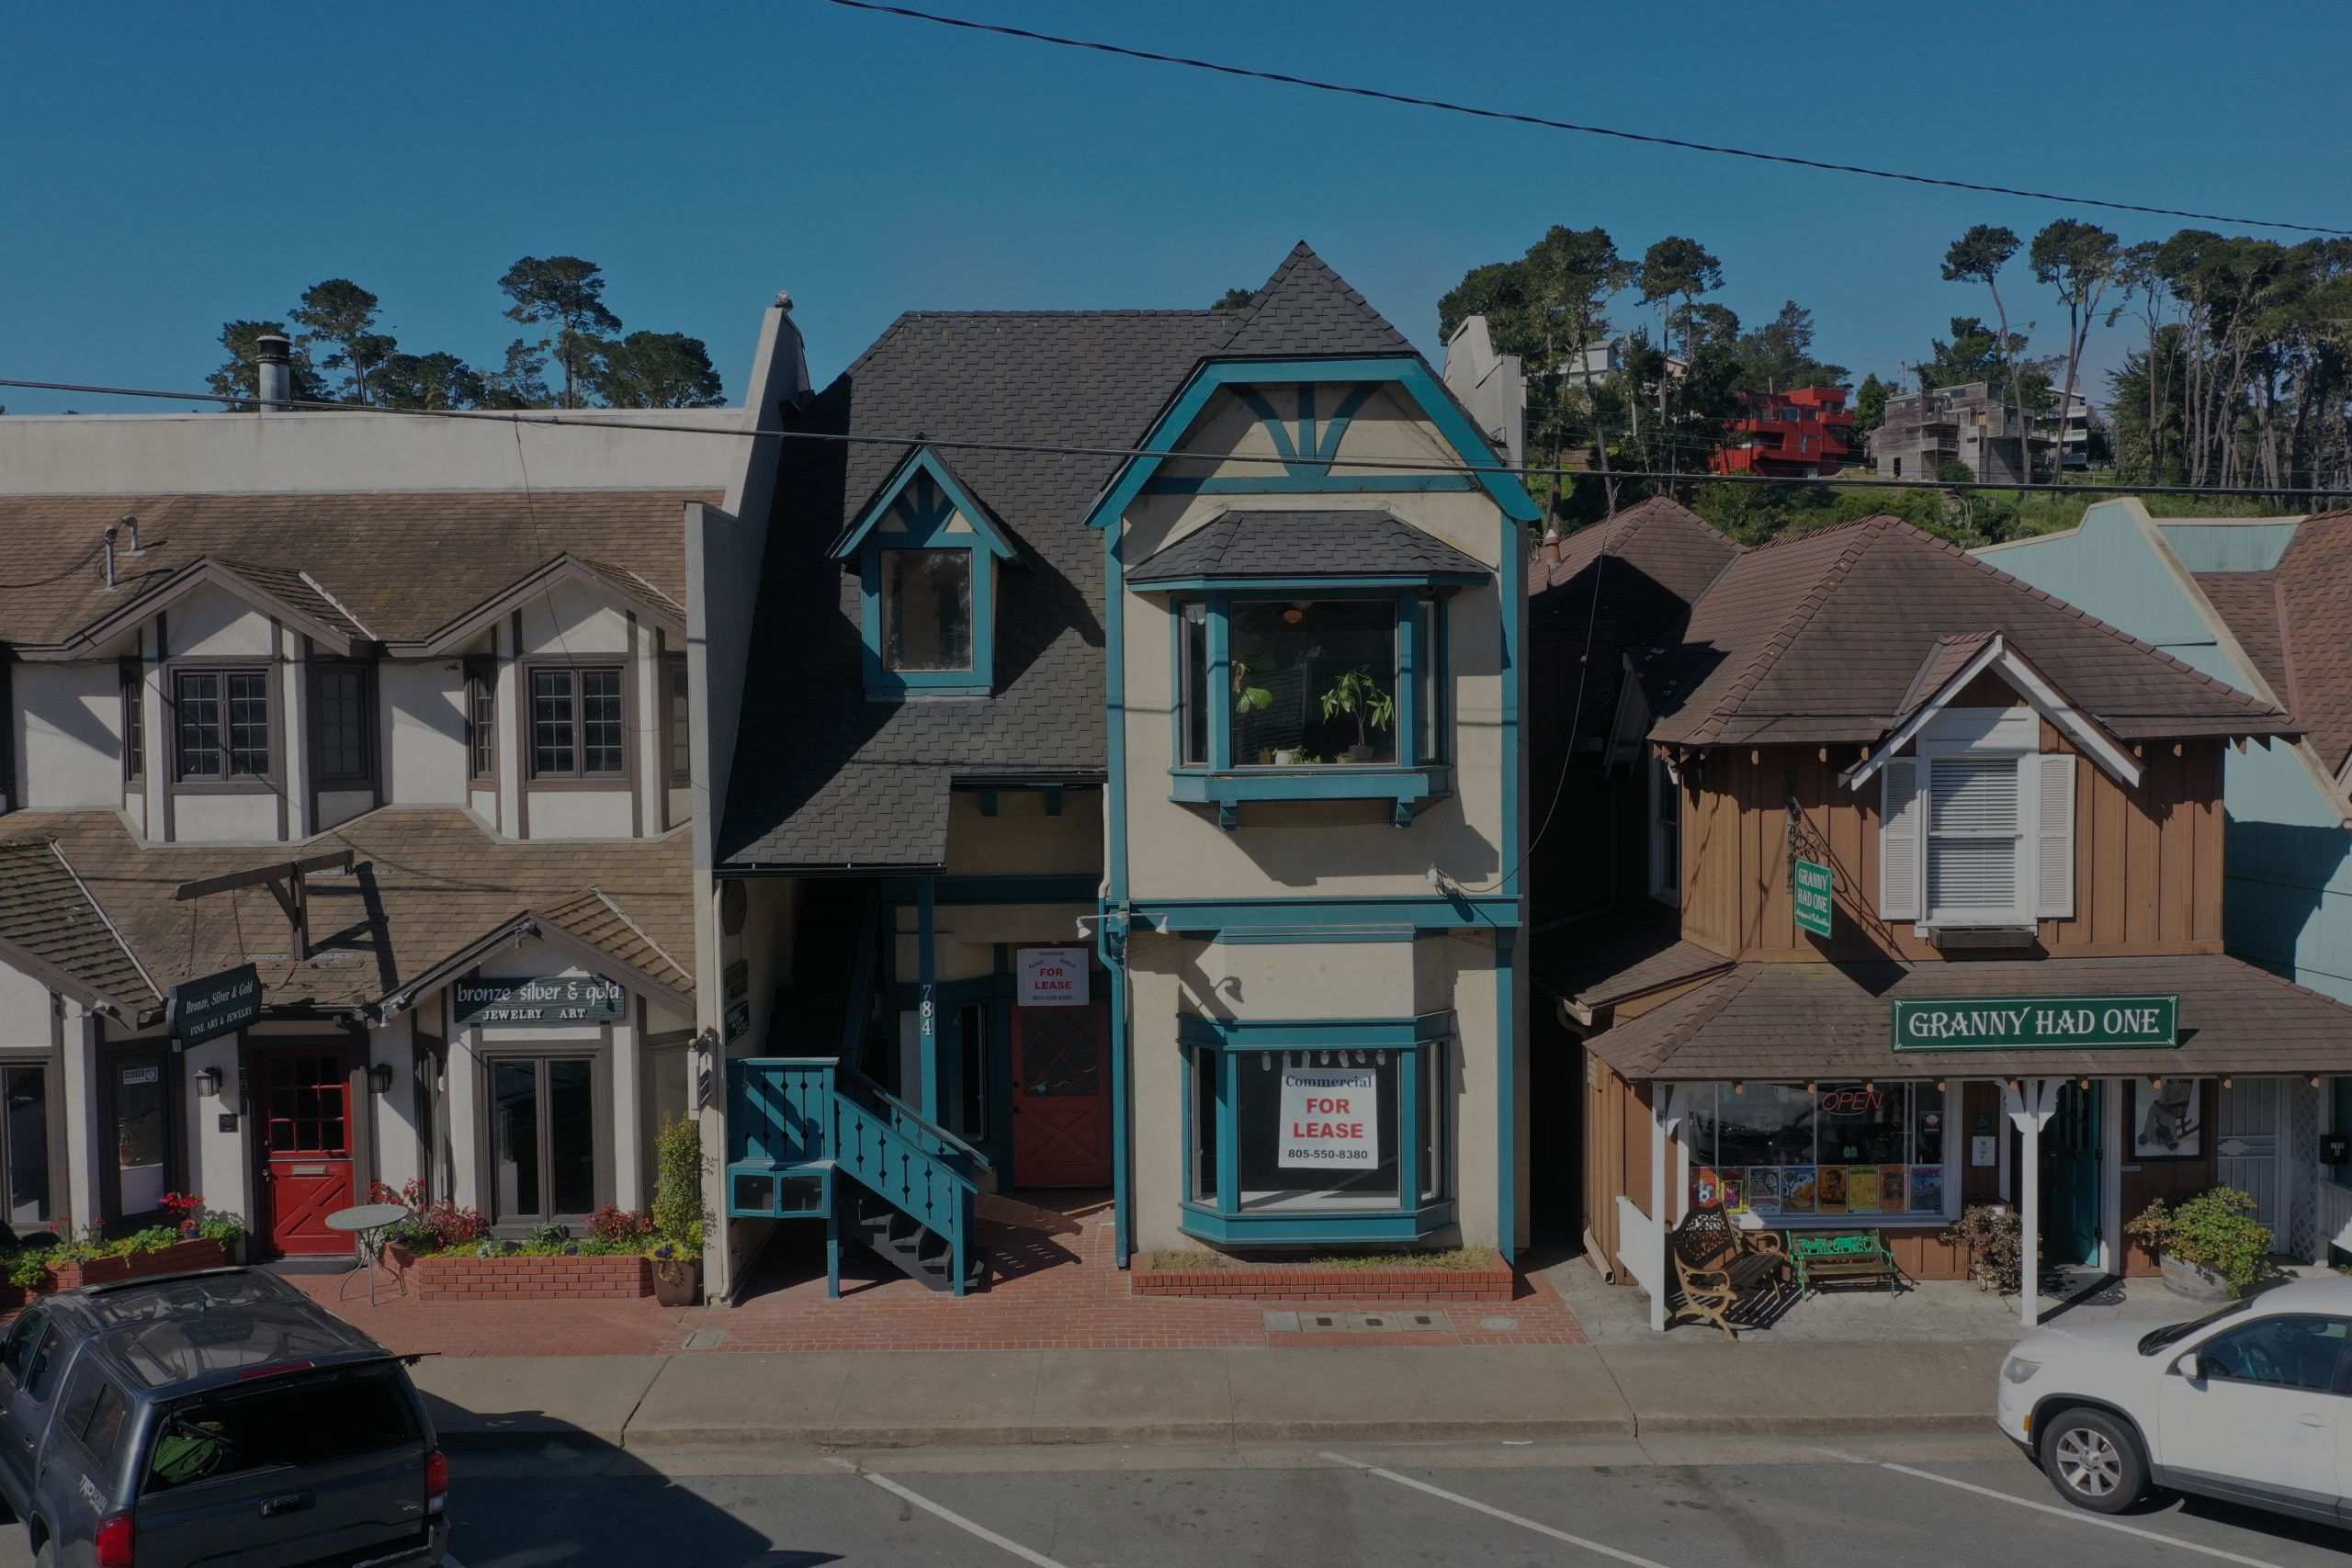 Commercial Property – 784 Main St., Cambria